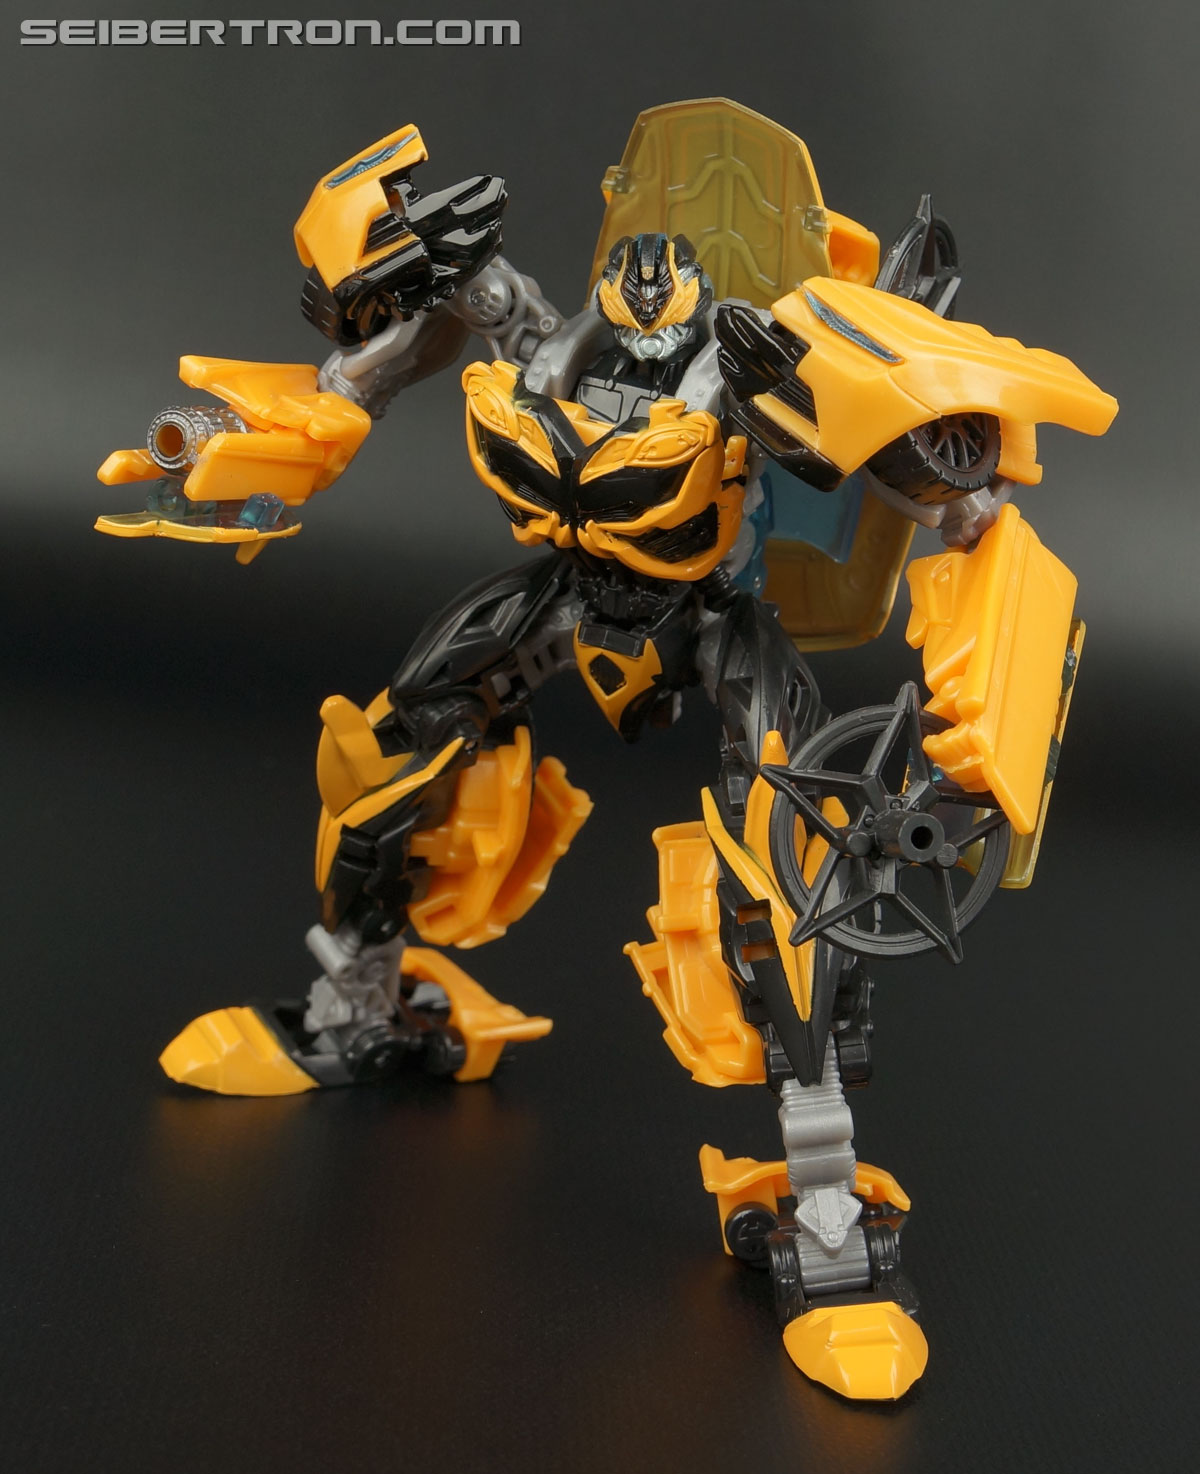 Transformers Age of Extinction: Generations Bumblebee (Image #104 of 190)